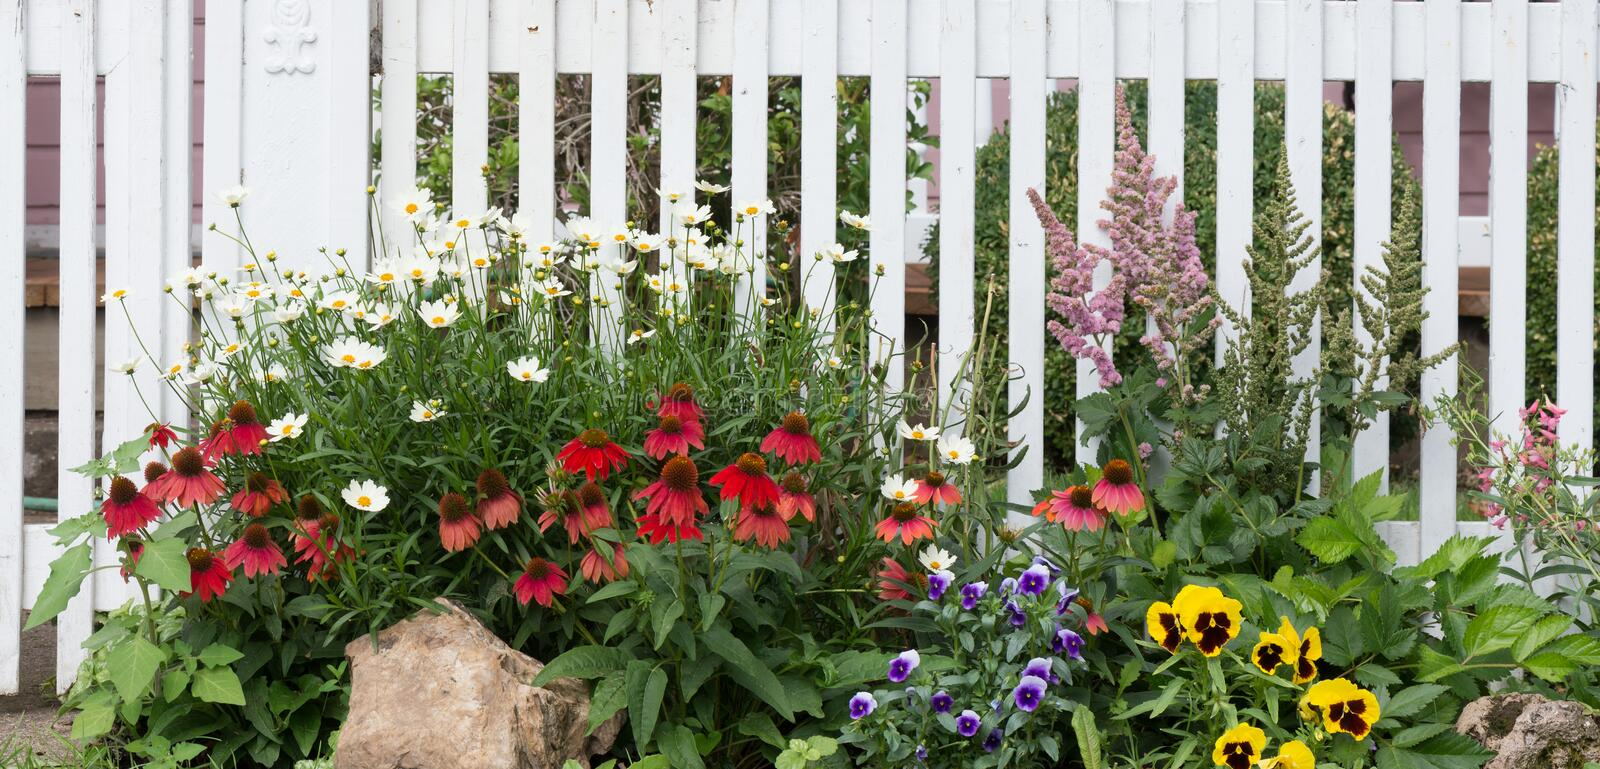 Old Fashioned Garden Fence. A jumble of daisies, red coneflowers, violas, astilbes, and yellow pansies in front of an old fashioned white wooden fence stock photo